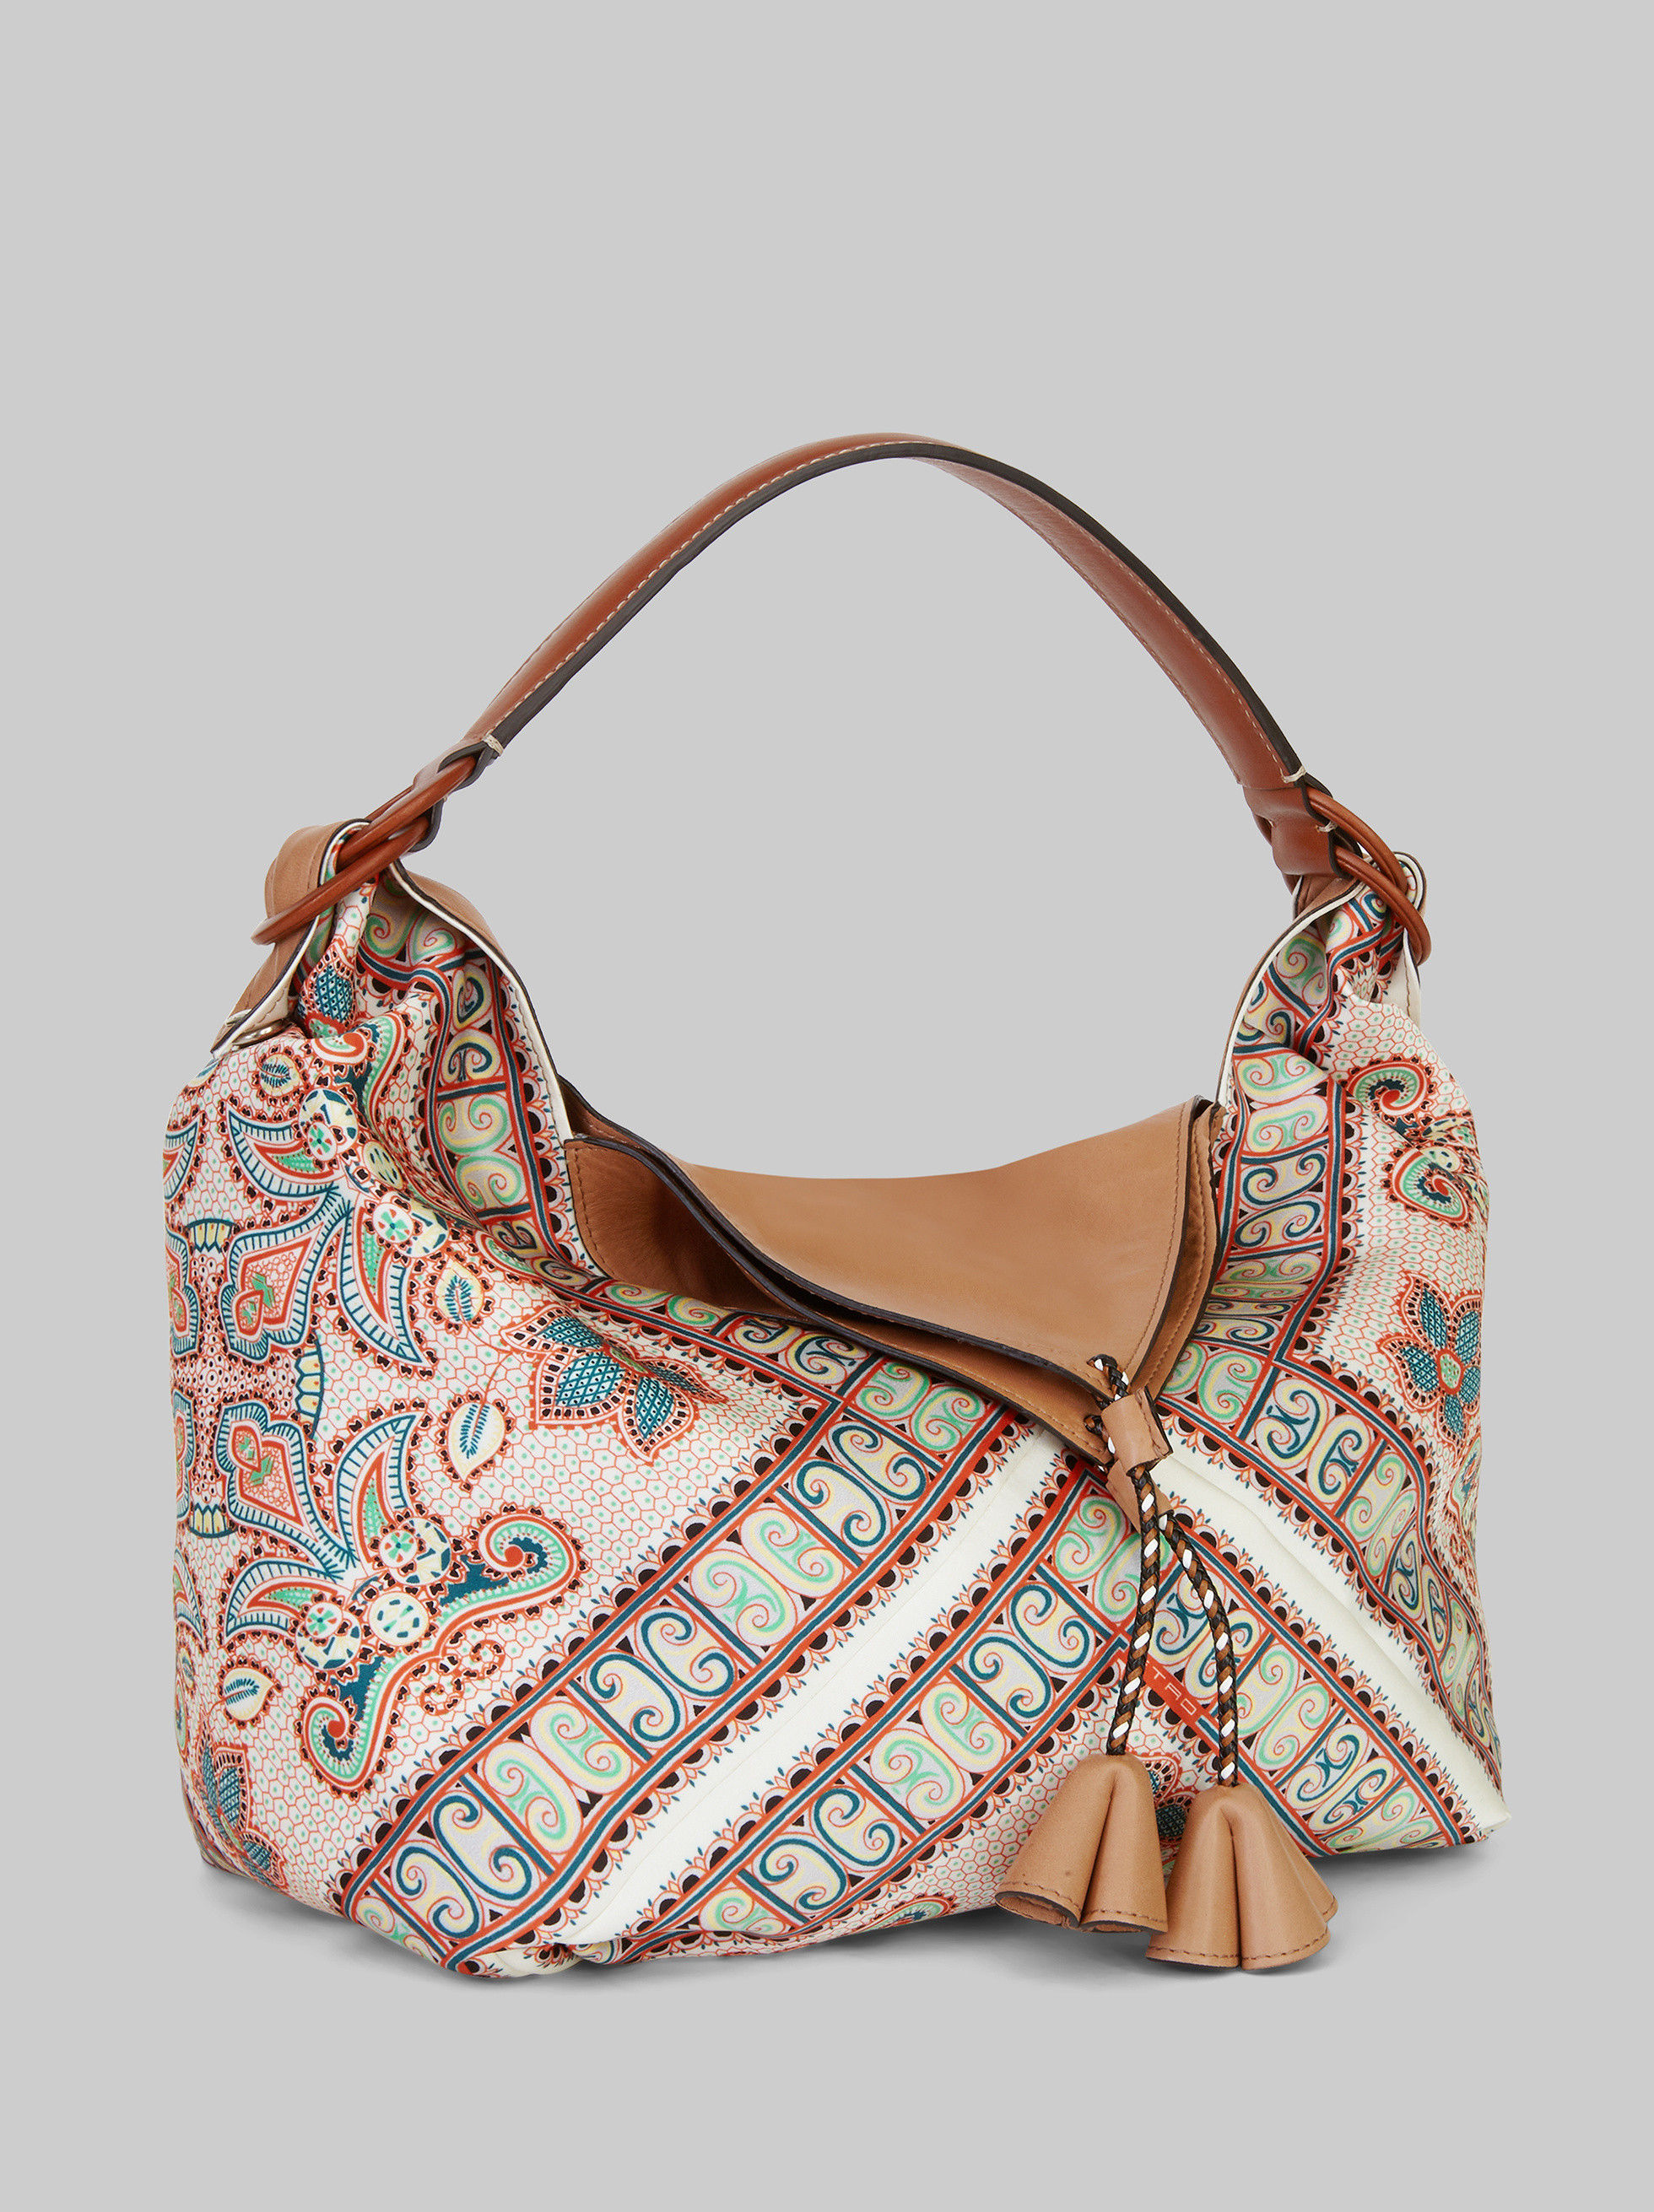 SATIN VOILÀ BAG WITH PAISLEY PRINT